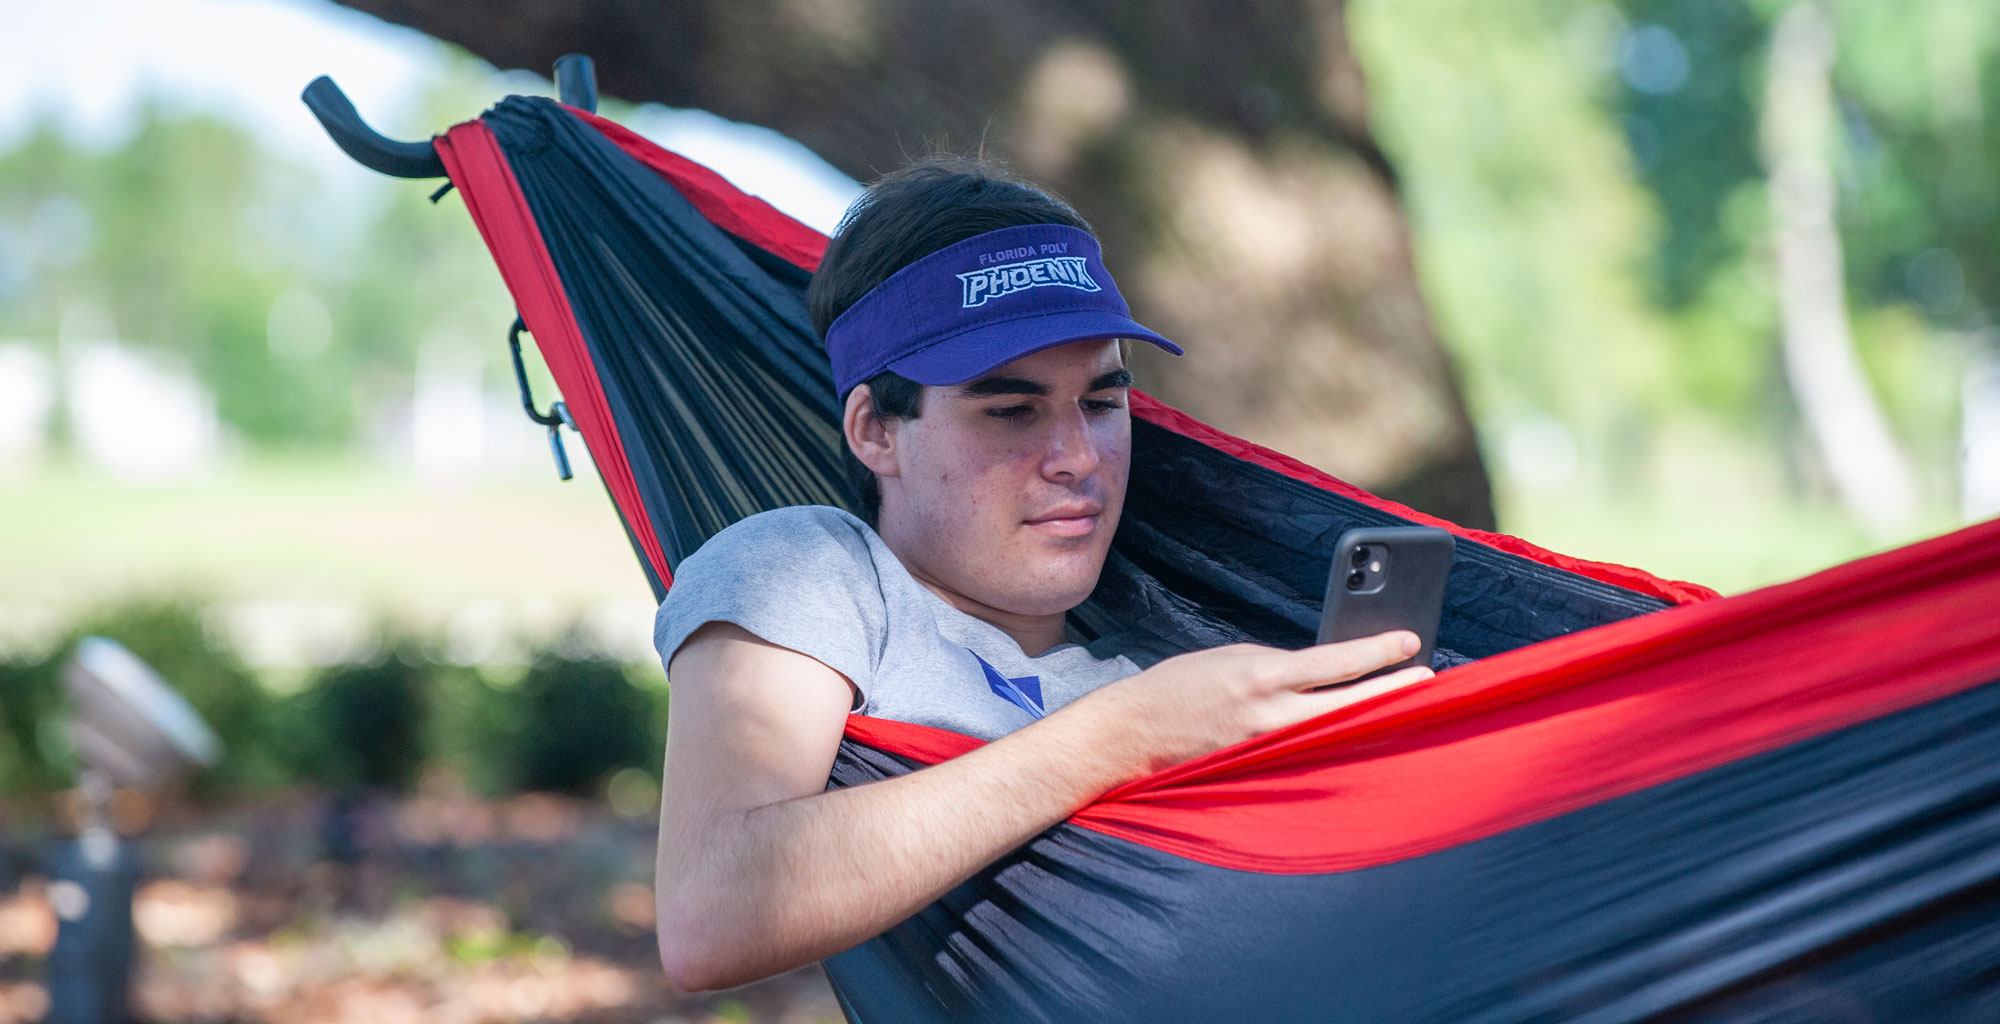 hammocking in the oak grove.